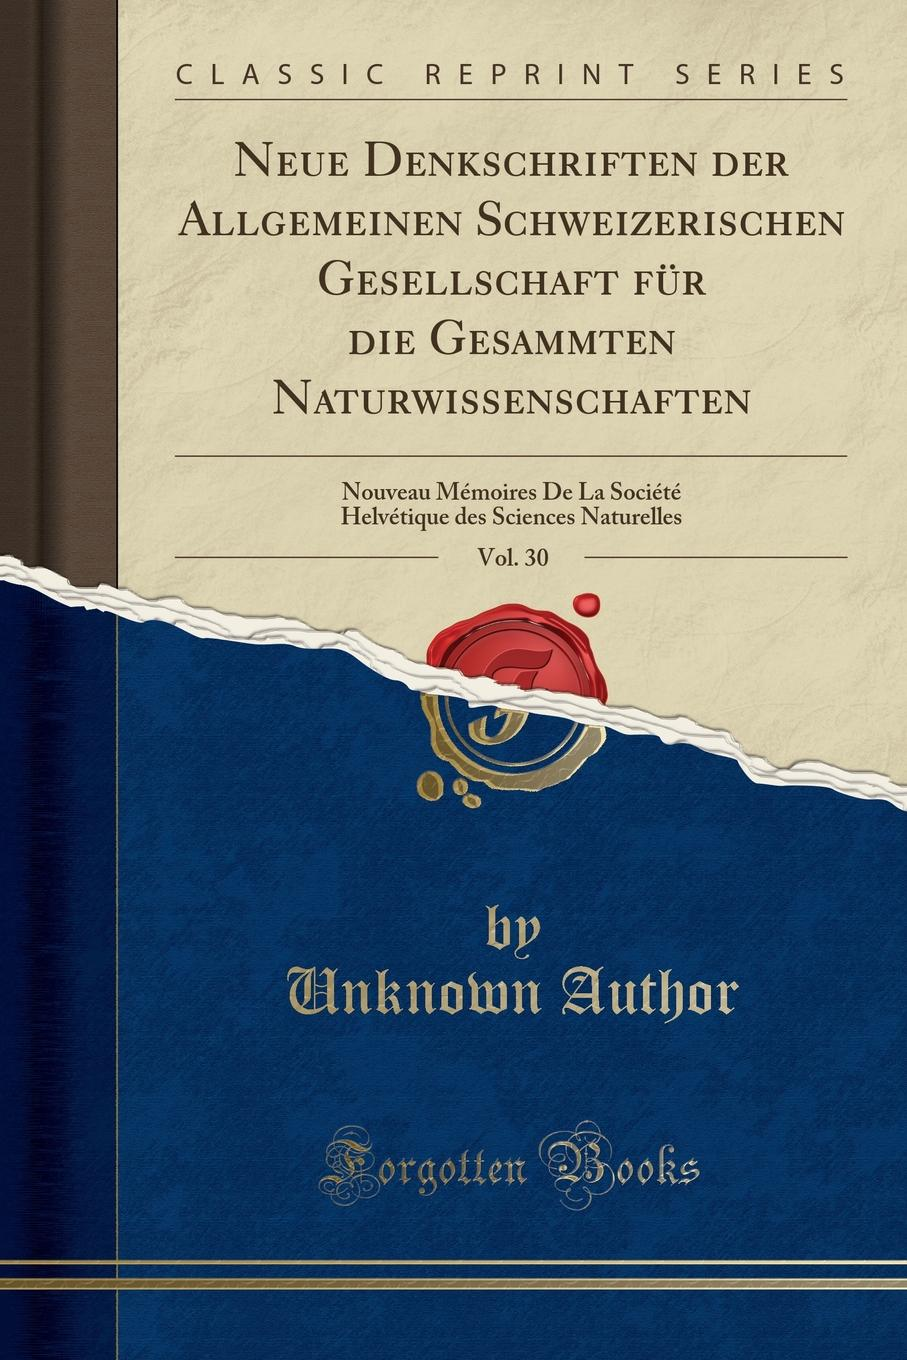 Unknown Author Neue Denkschriften der Allgemeinen Schweizerischen Gesellschaft fur die Gesammten Naturwissenschaften, Vol. 30. Nouveau Memoires De La Societe Helvetique des Sciences Naturelles (Classic Reprint) howard elmore parkhurst studien an intracellularen symbionten i die intracellularen symbionten der hemipteren